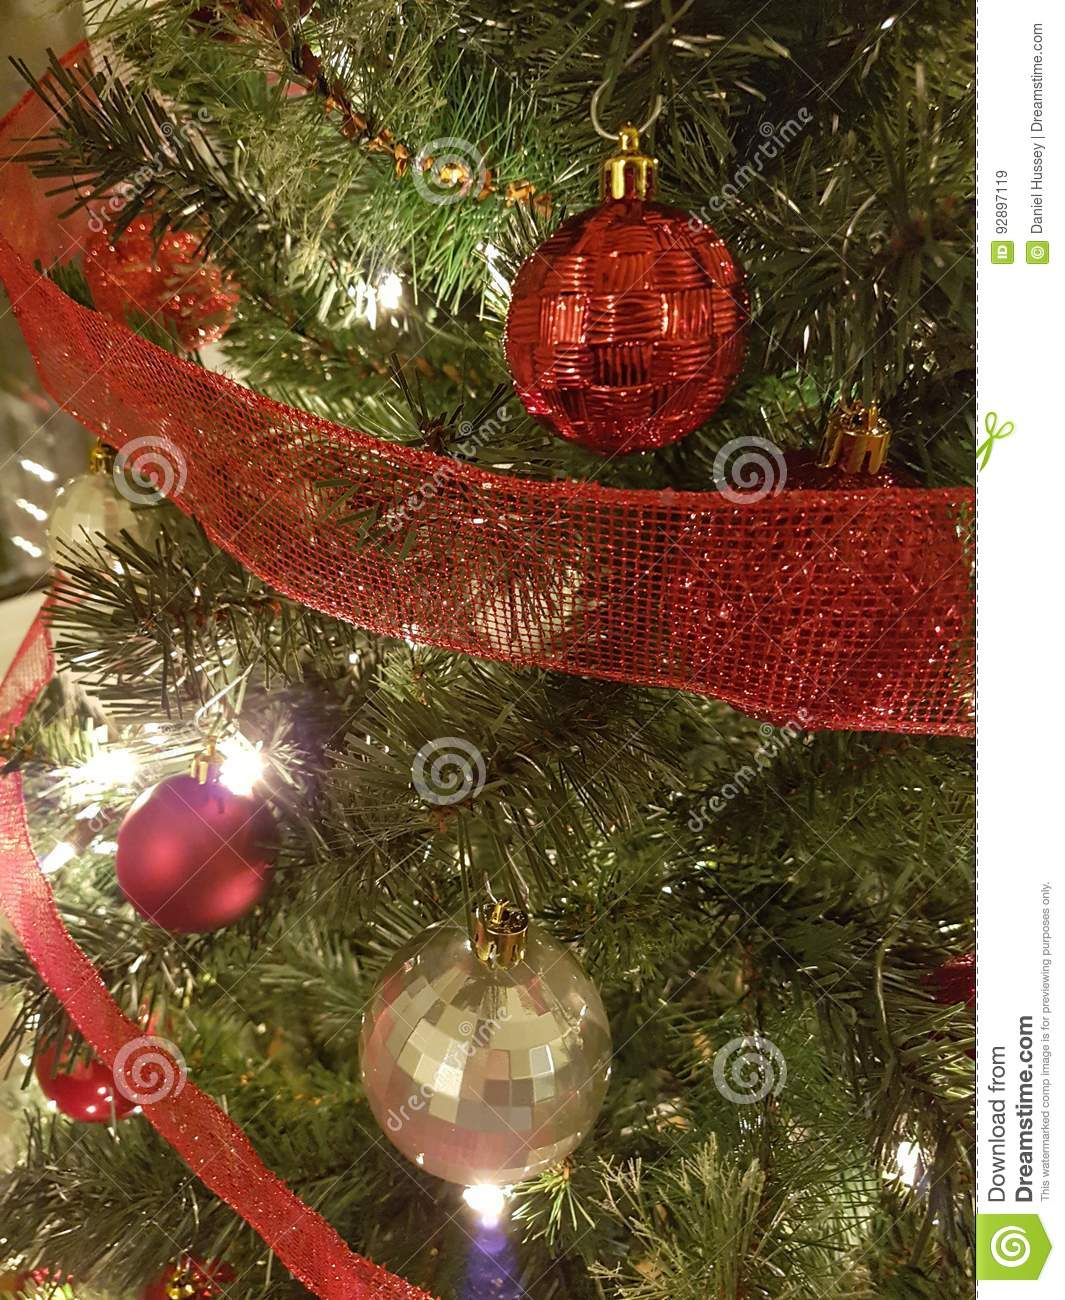 Red And Gold Christmas Trees: Red And Gold Christmas Ball Tree Decoration Stock Image